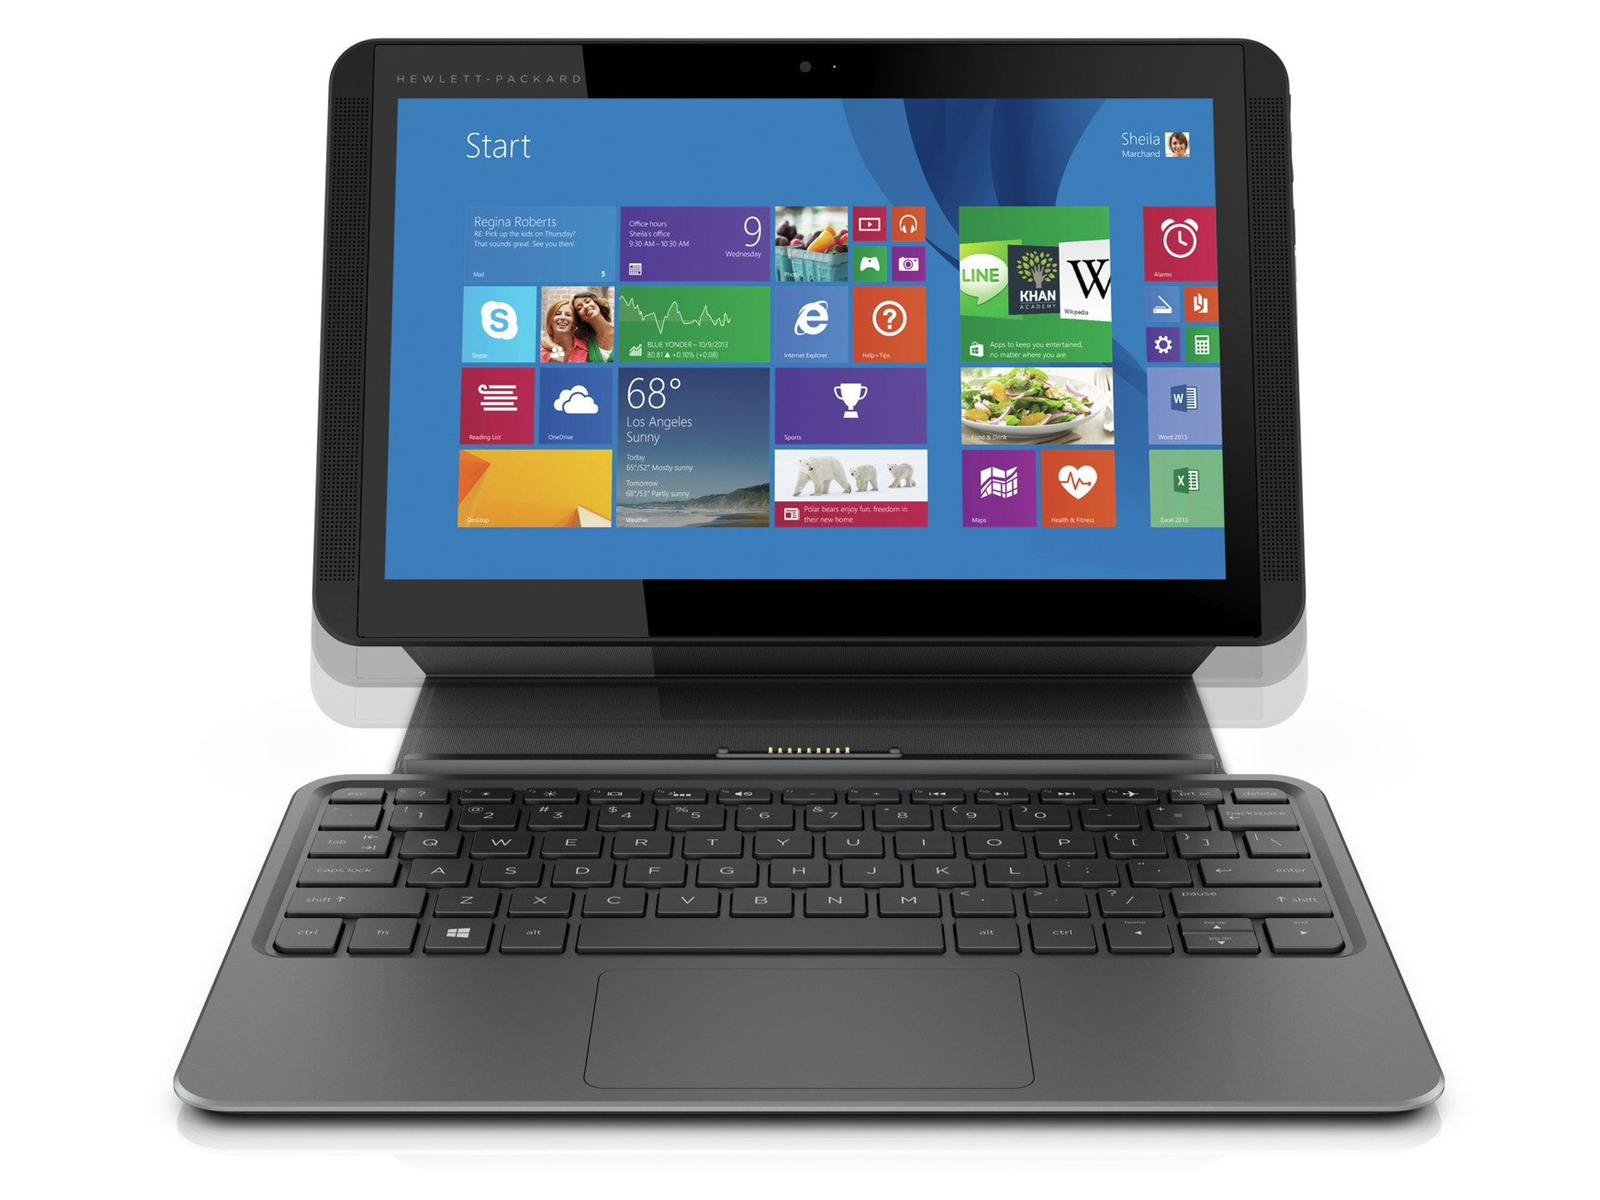 HP Pavilion 10-k000ng x2 Tablet Review